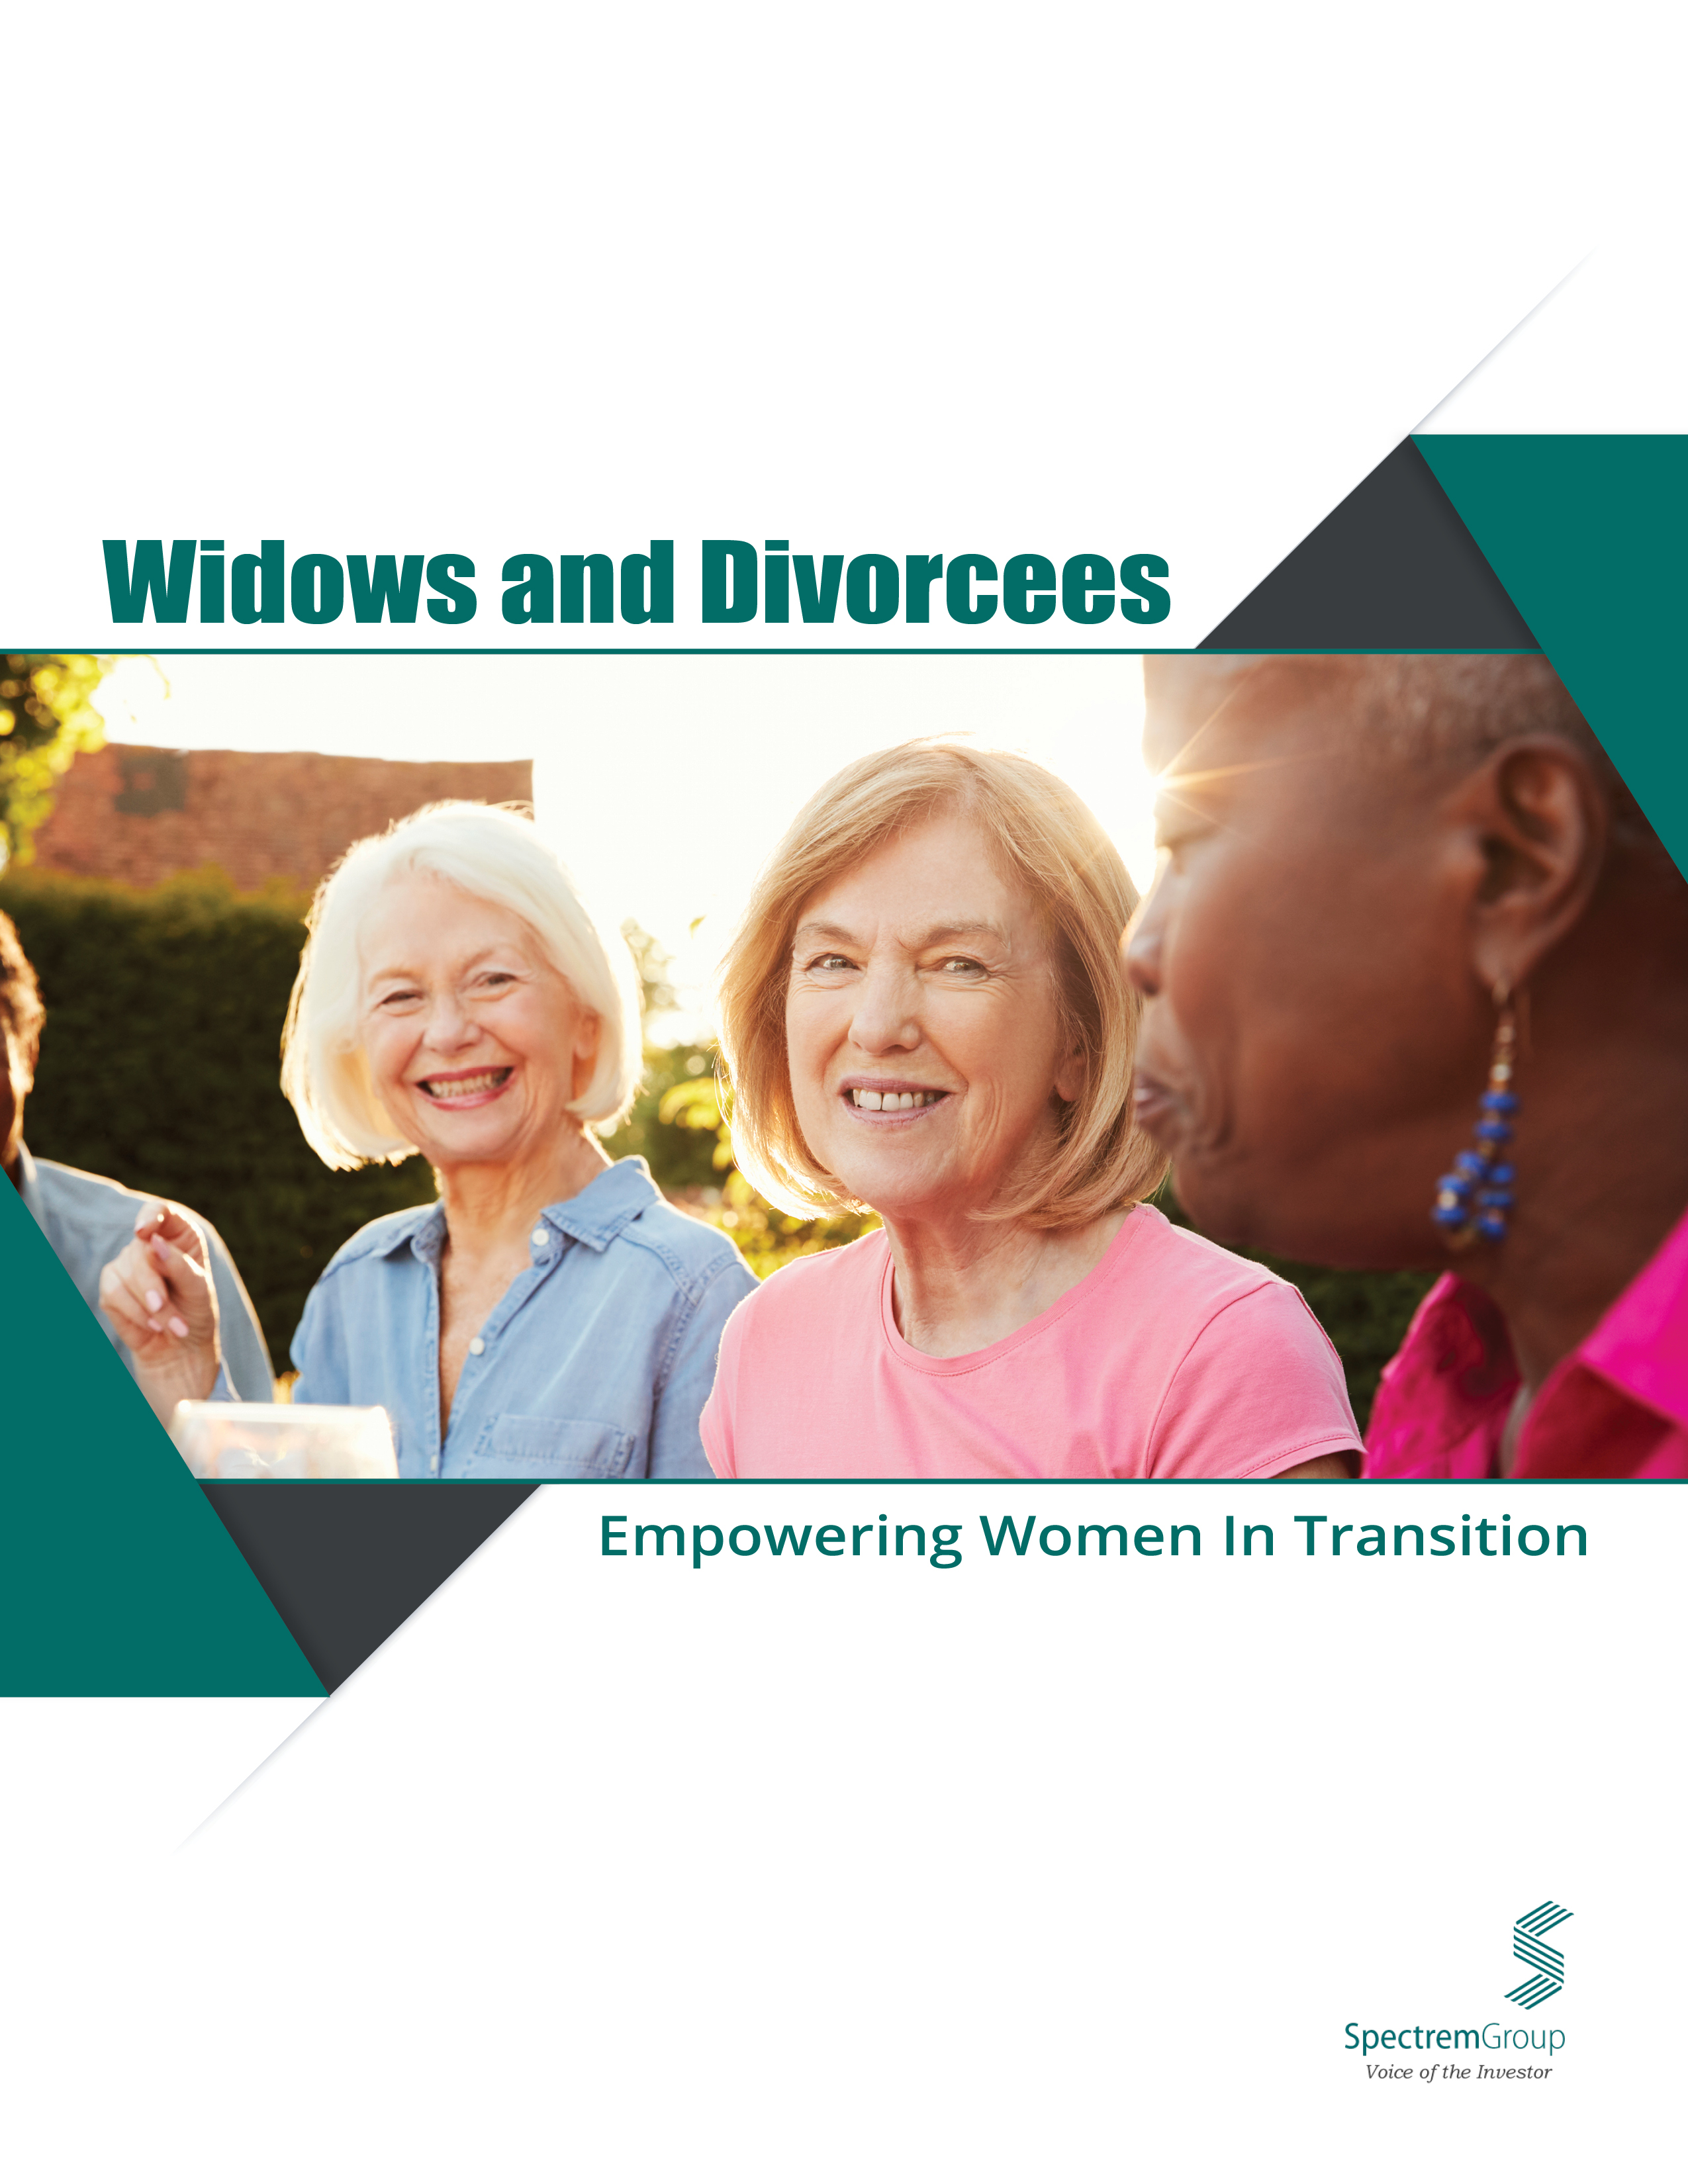 Widows and Divorcees: Empowering Women in Transition